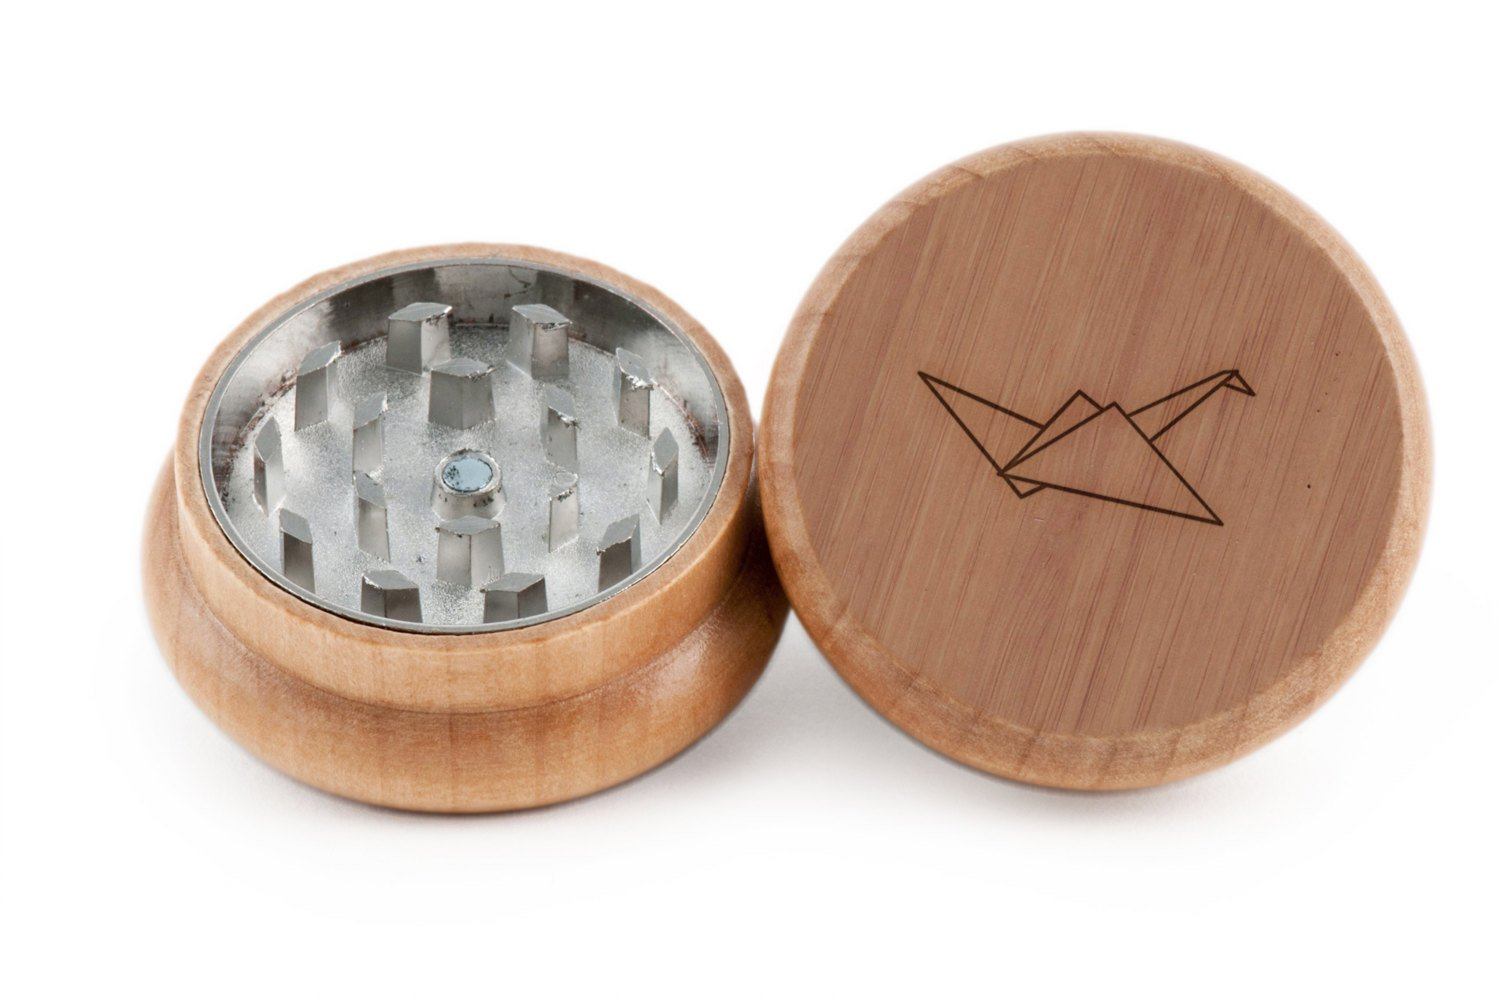 GRINDCANDY Spice And Herb Grinder - Laser Etched Paper Crane Design - Manual Oak Pepper Grinder